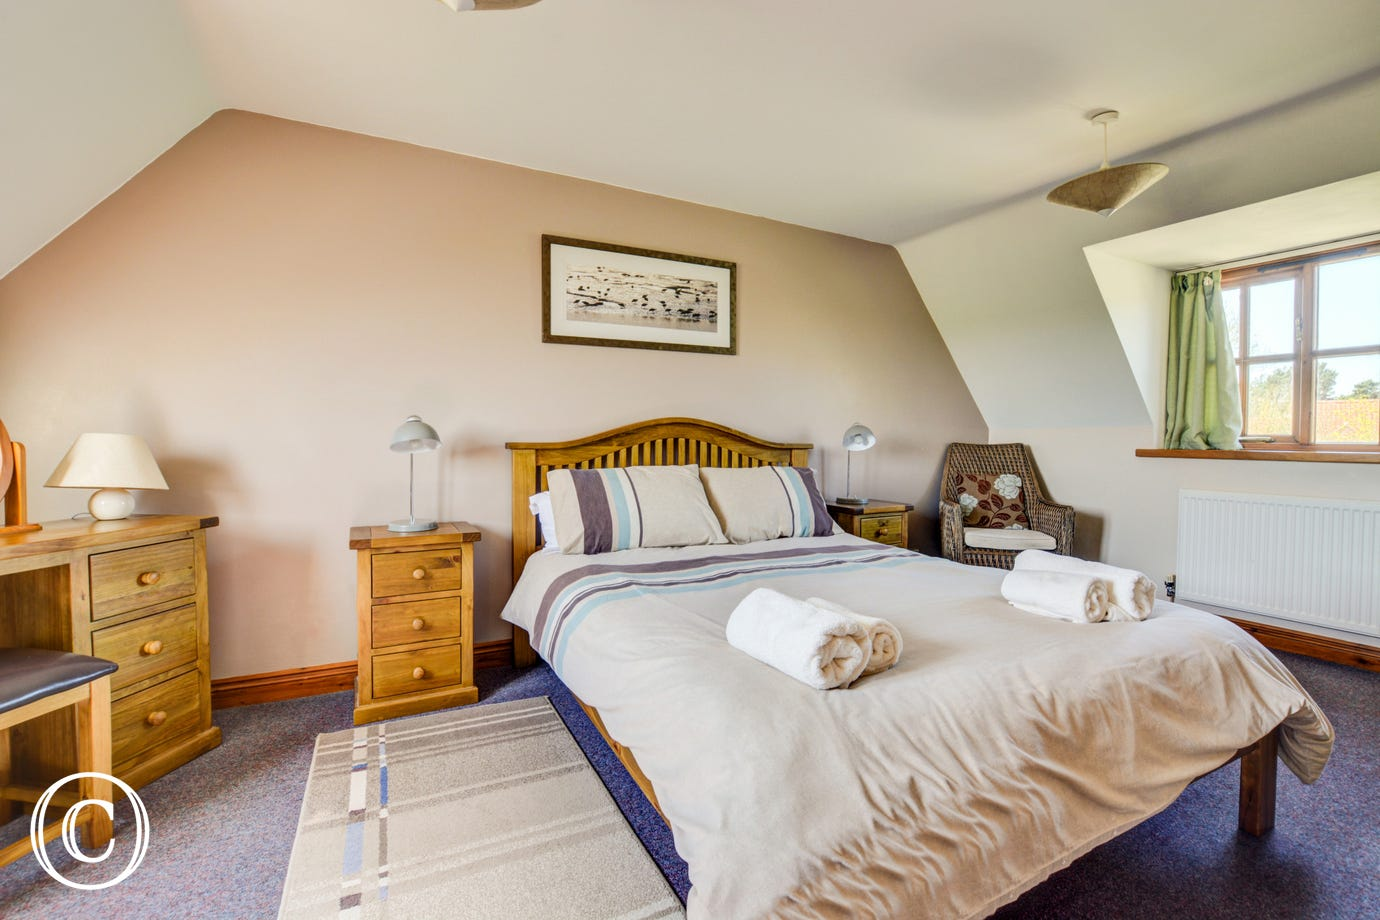 A comfortable and spacious double bedded room with television.